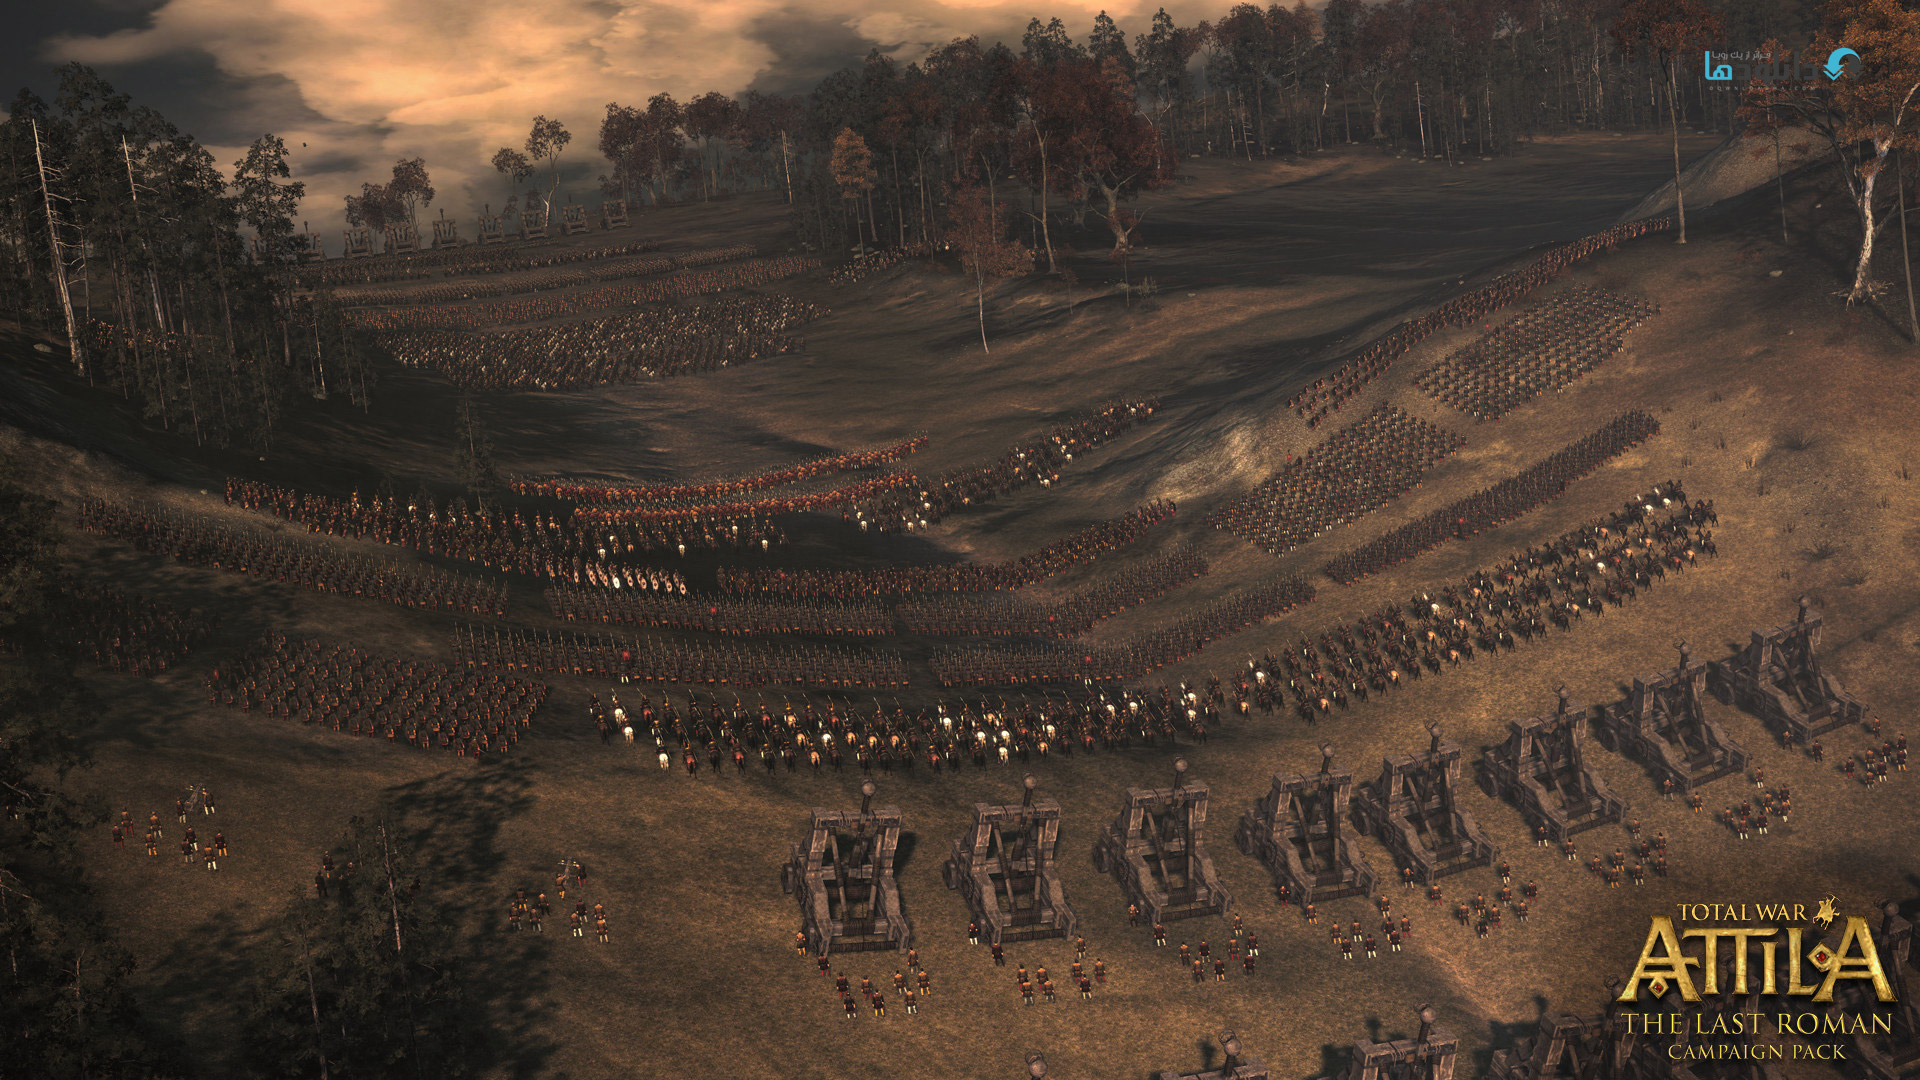 http://img5.downloadha.com/hosein/Game/June%202015/26/Total-War-ATTILA-The-Last-Roman-Campaign-Pack-screenshots-02-large.jpg